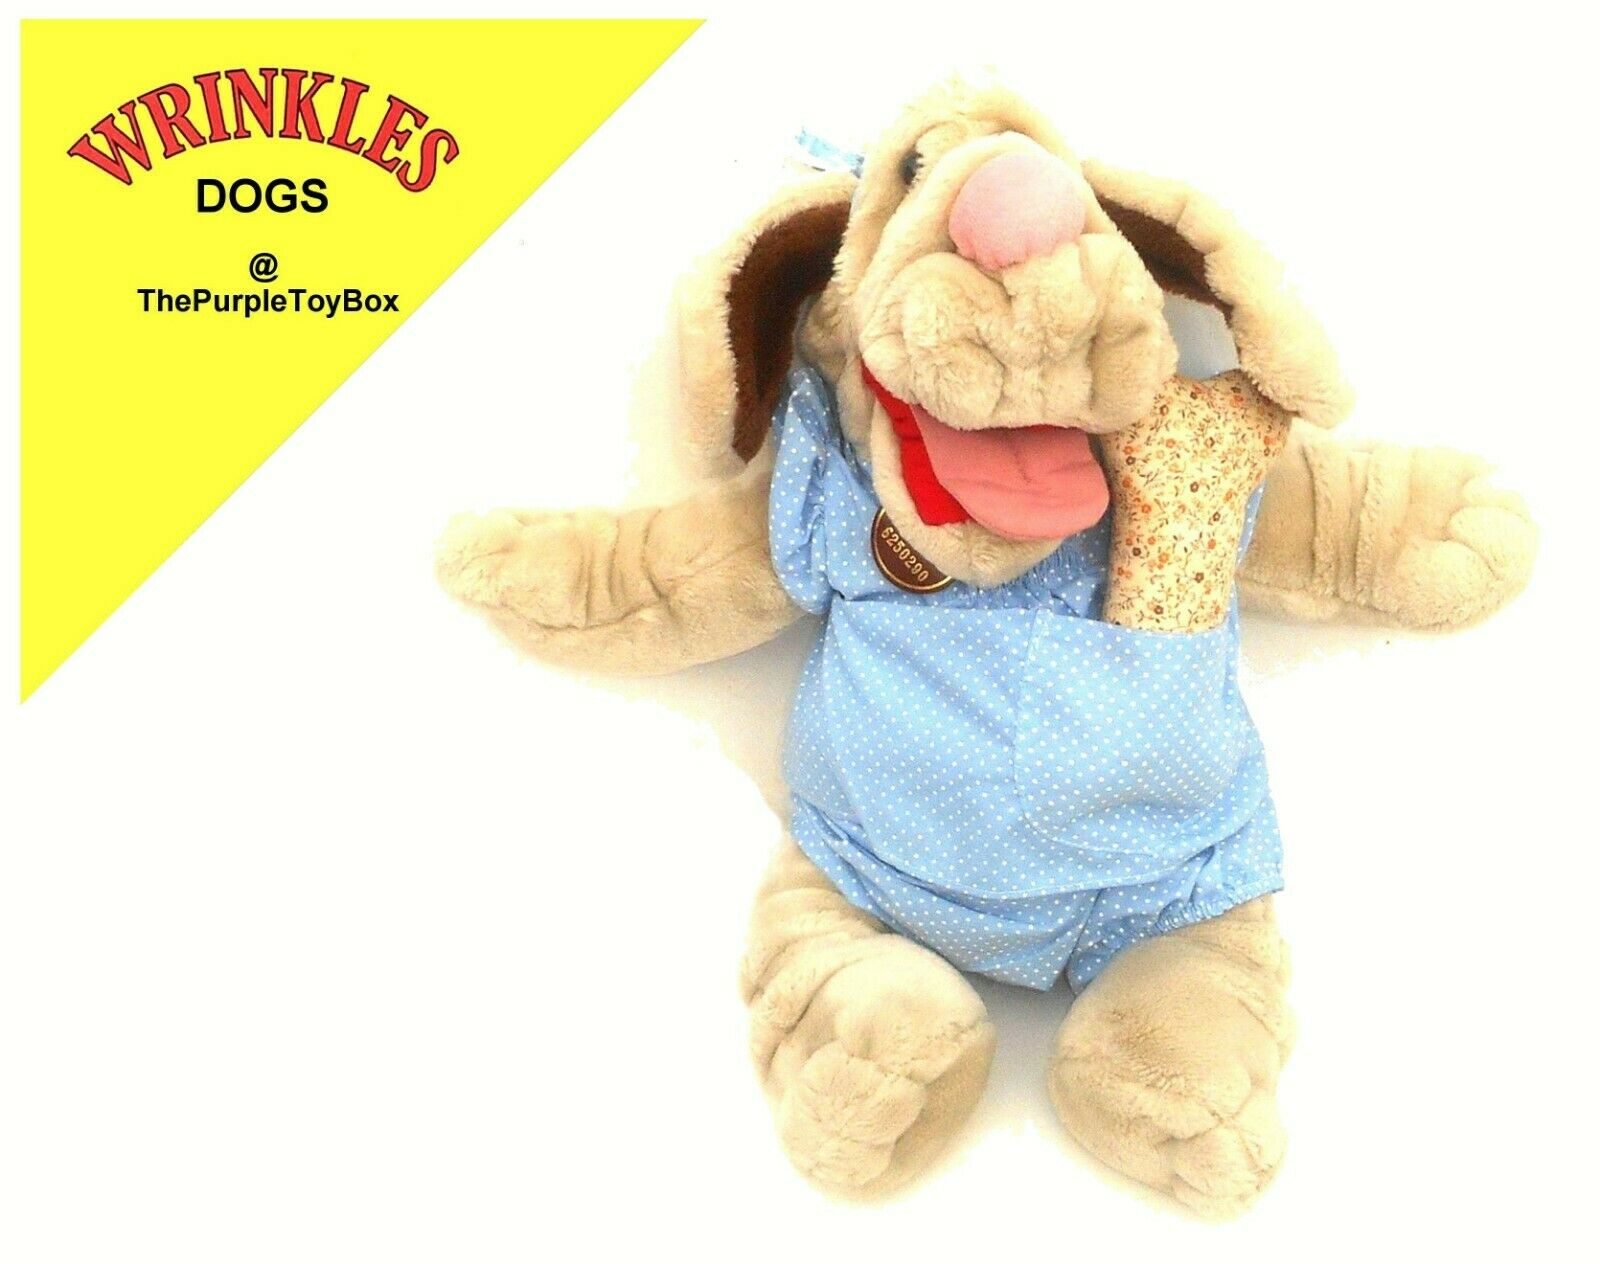 1981 Wrinkles Dogs  GIRL DOG with BONE  Plush Toy by Ganz